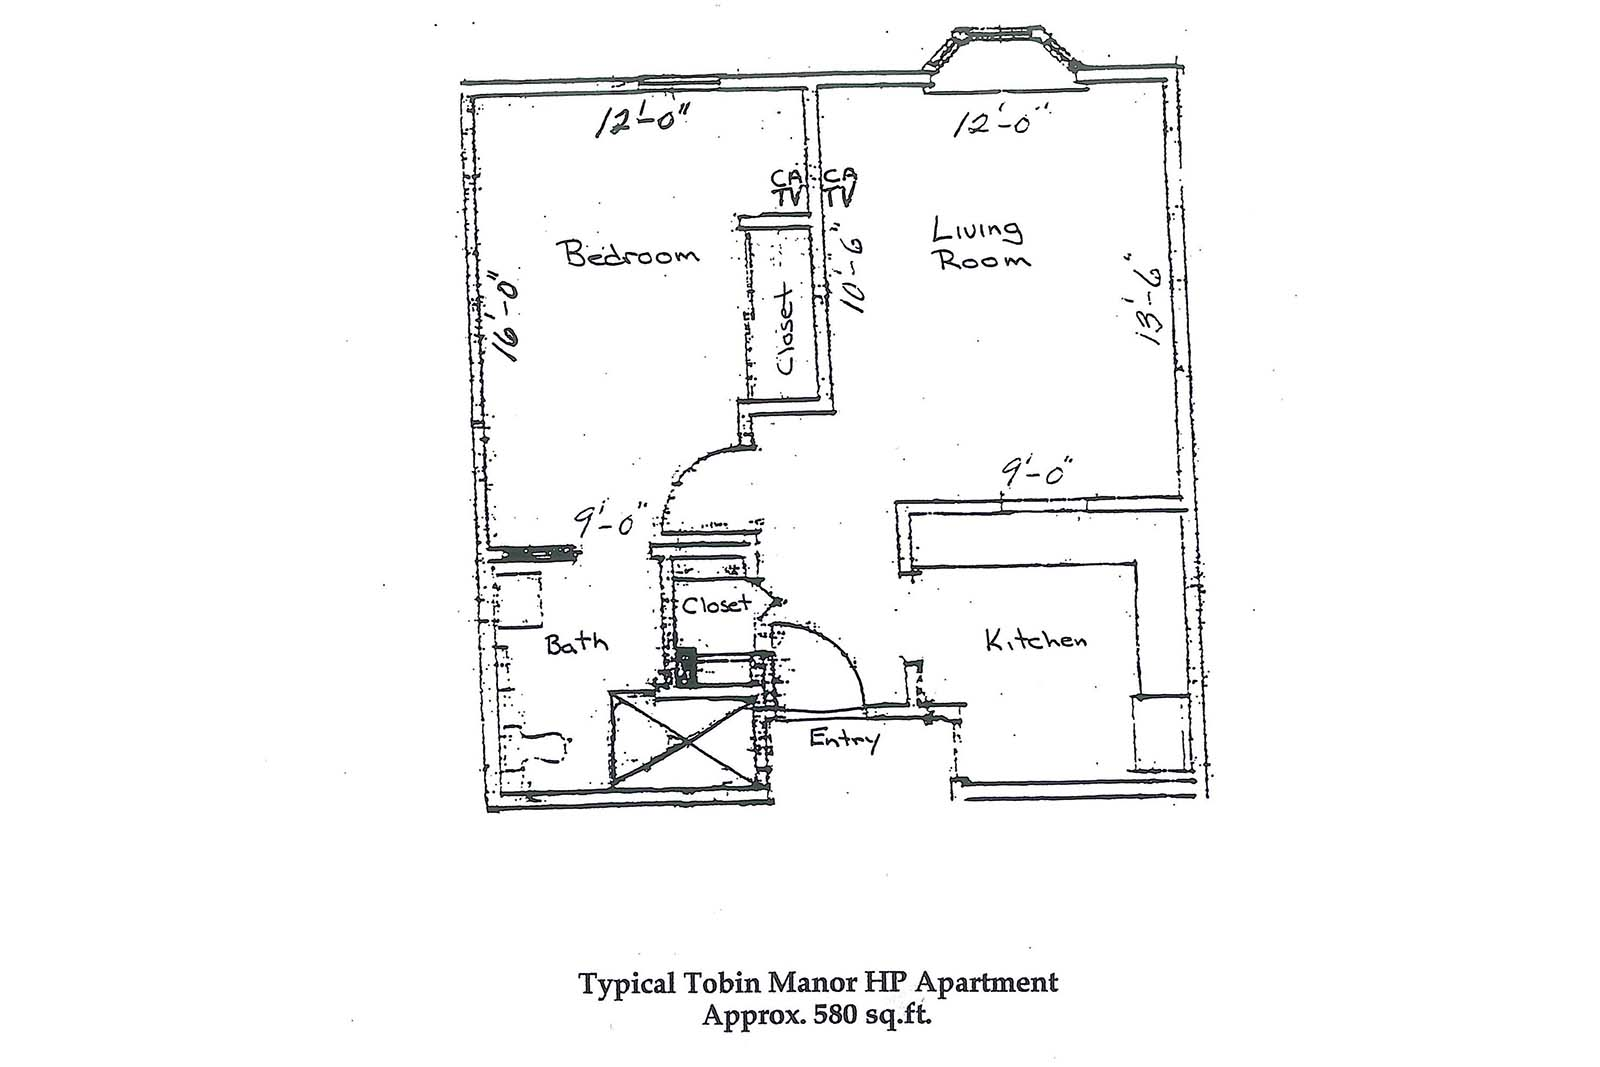 Tobin Manor 1 bR layout